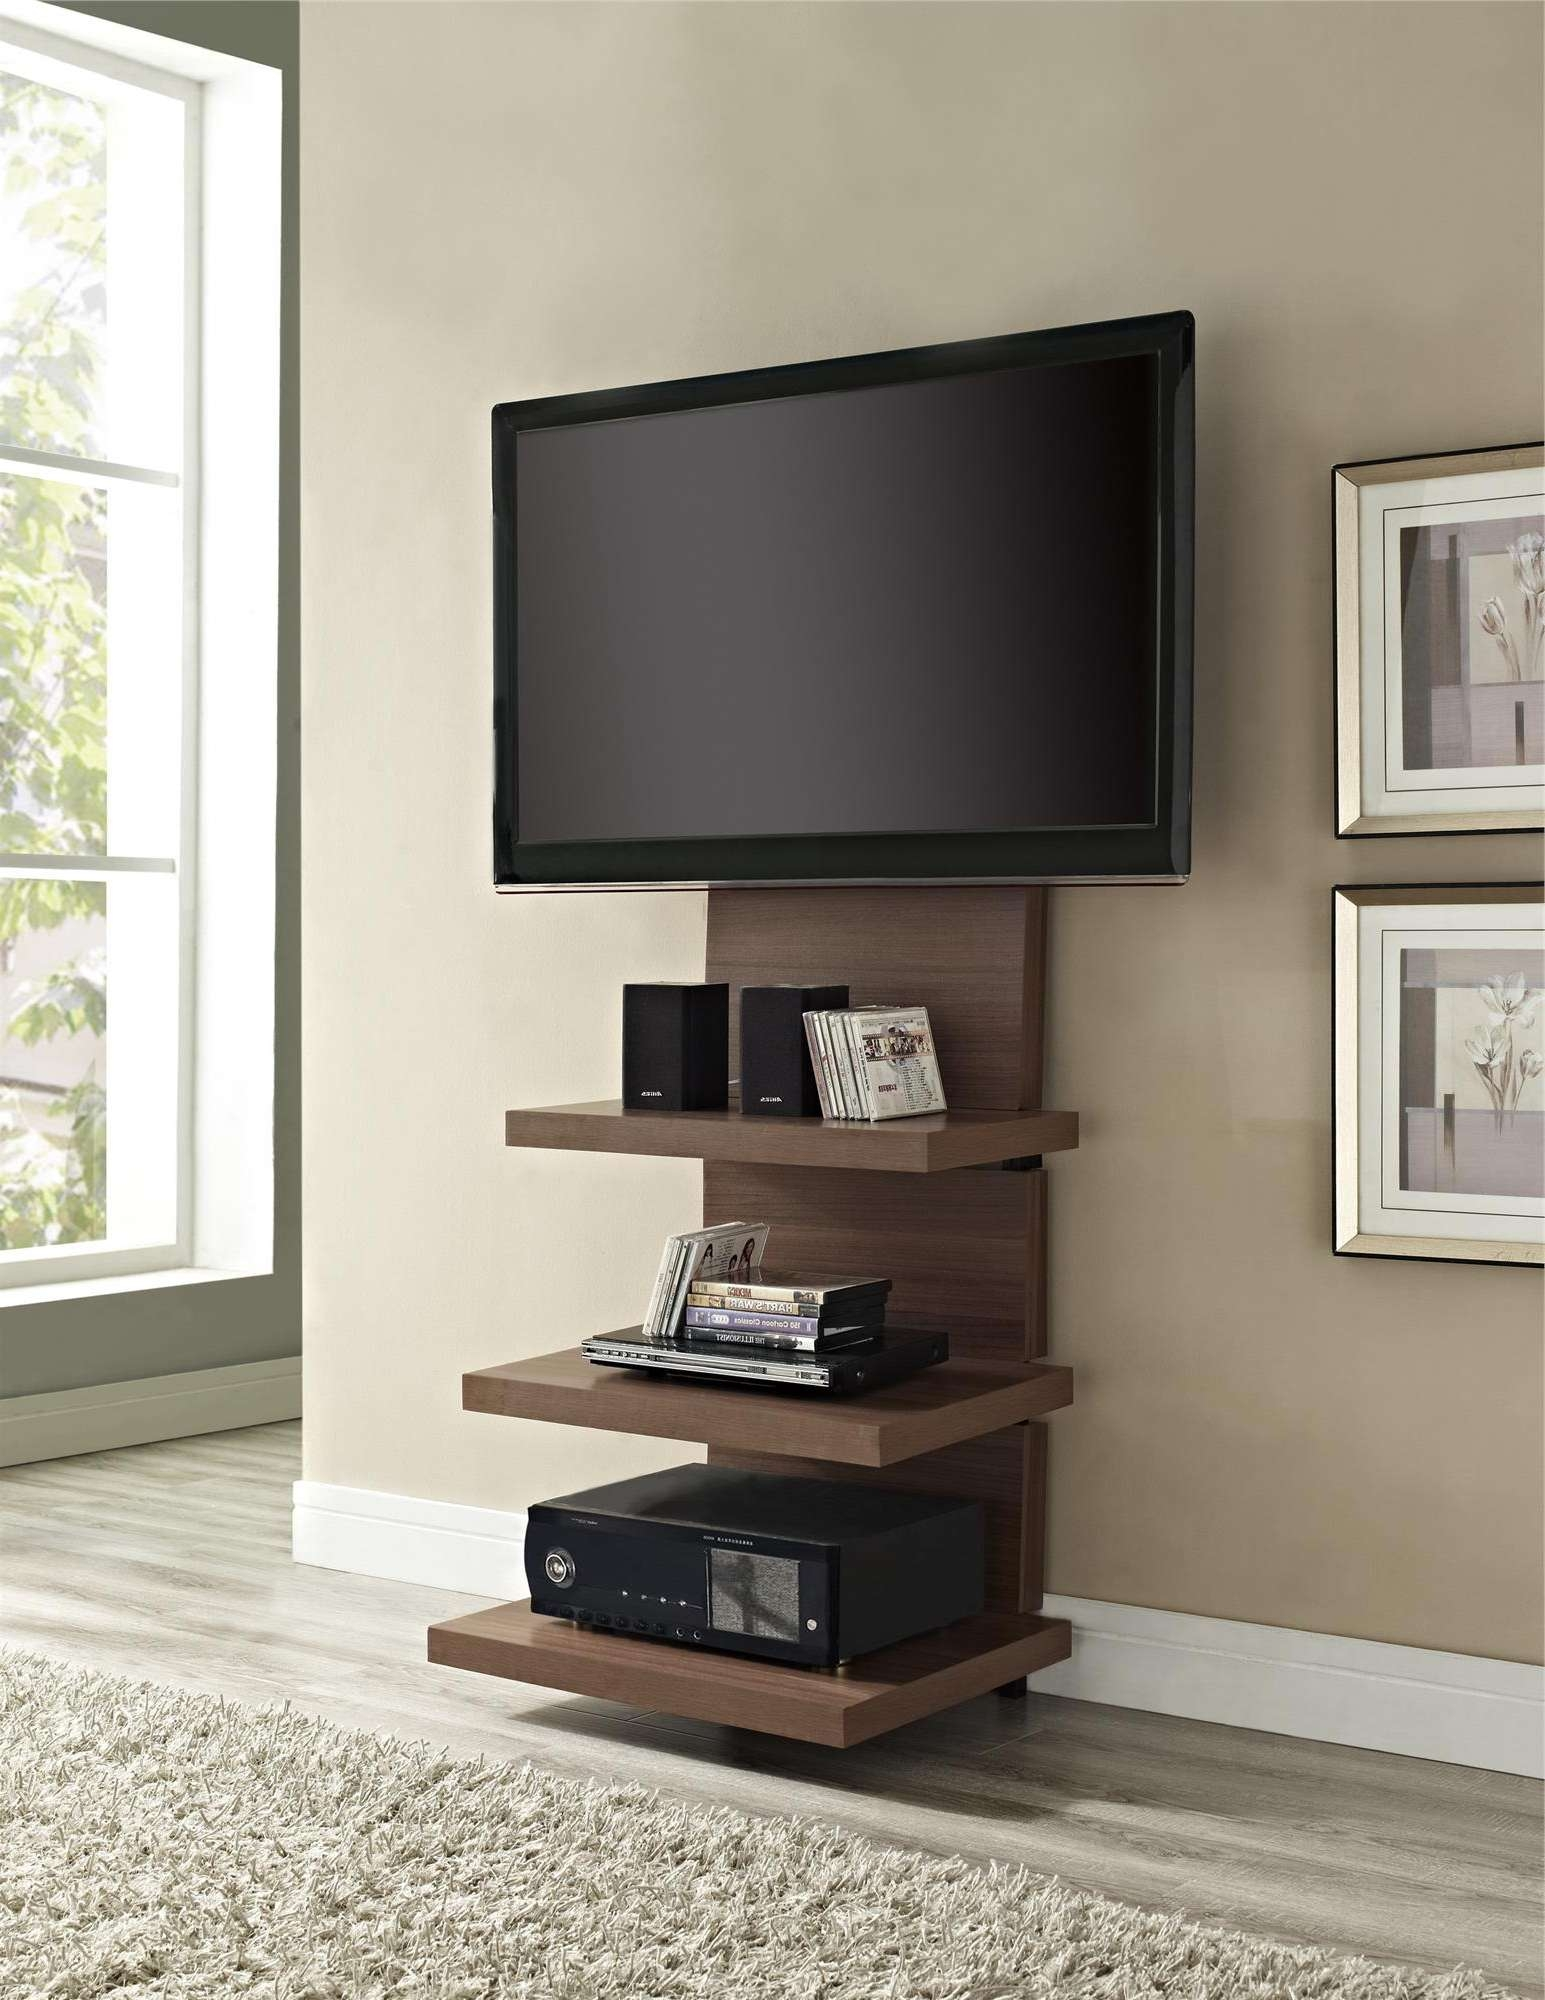 Tall Wood Wall Mounted Tv Stand With Shelves And Mount For Flat Intended For Unique Tv Stands (View 8 of 15)